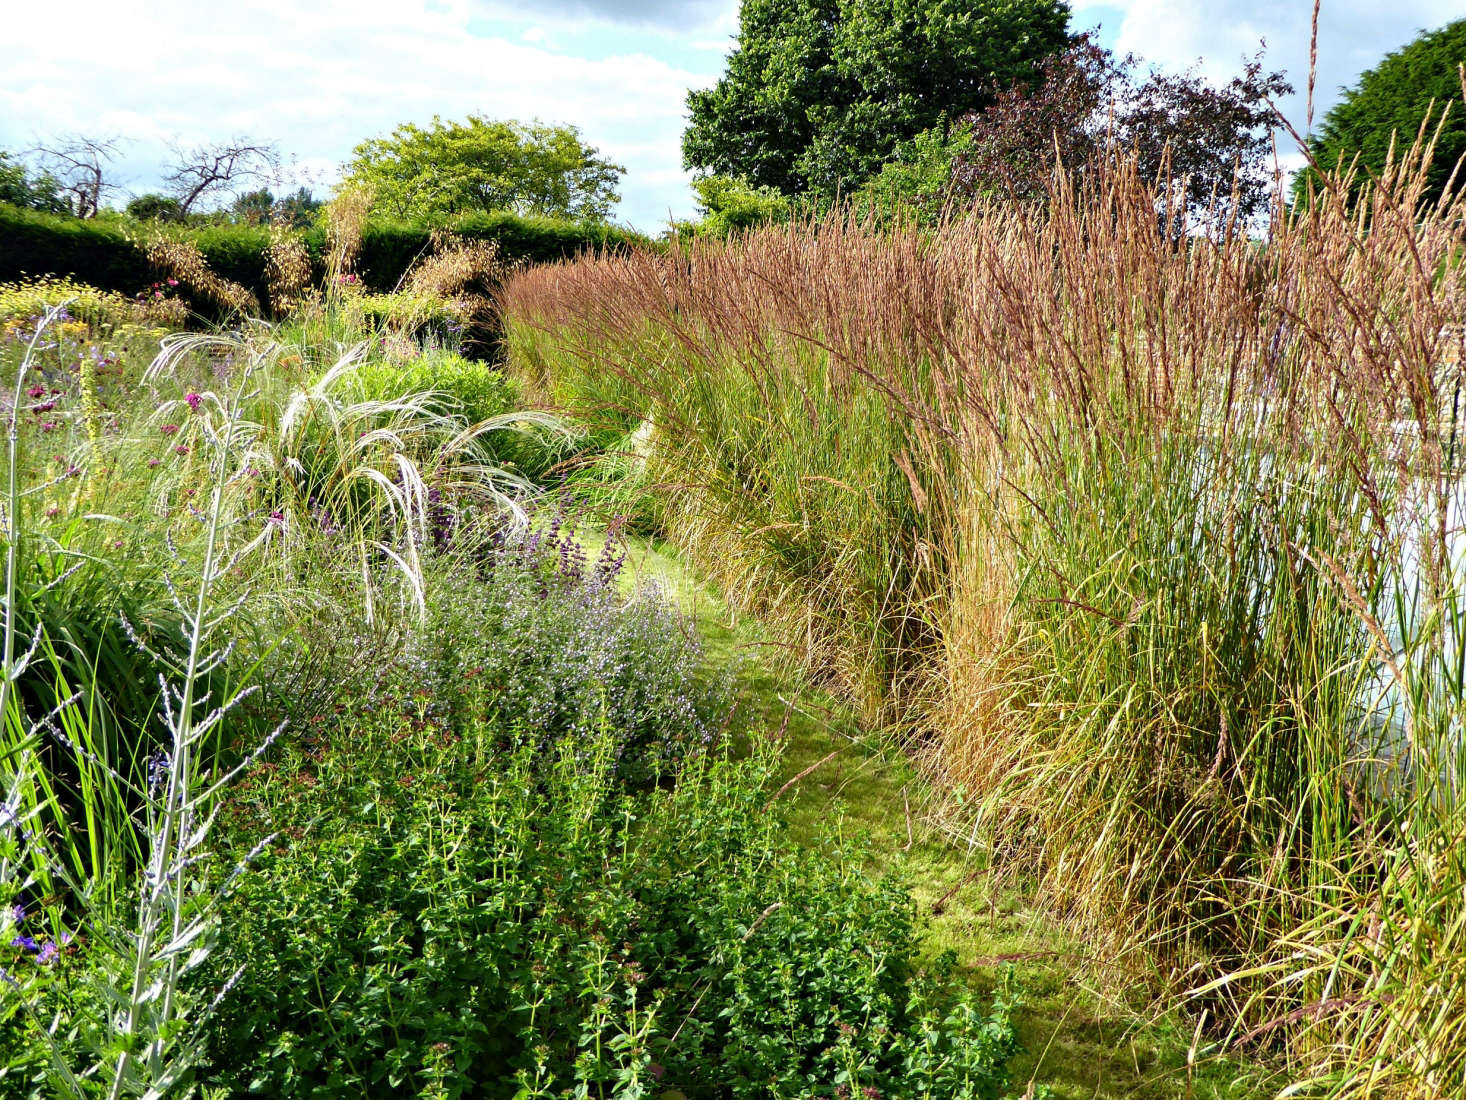 When they bought the house, Catherine and her husband, Paddy, installed a big swimming pool. To shield it from the rest of the garden, Catherine has planted a long wall of Calamagrostis &#8